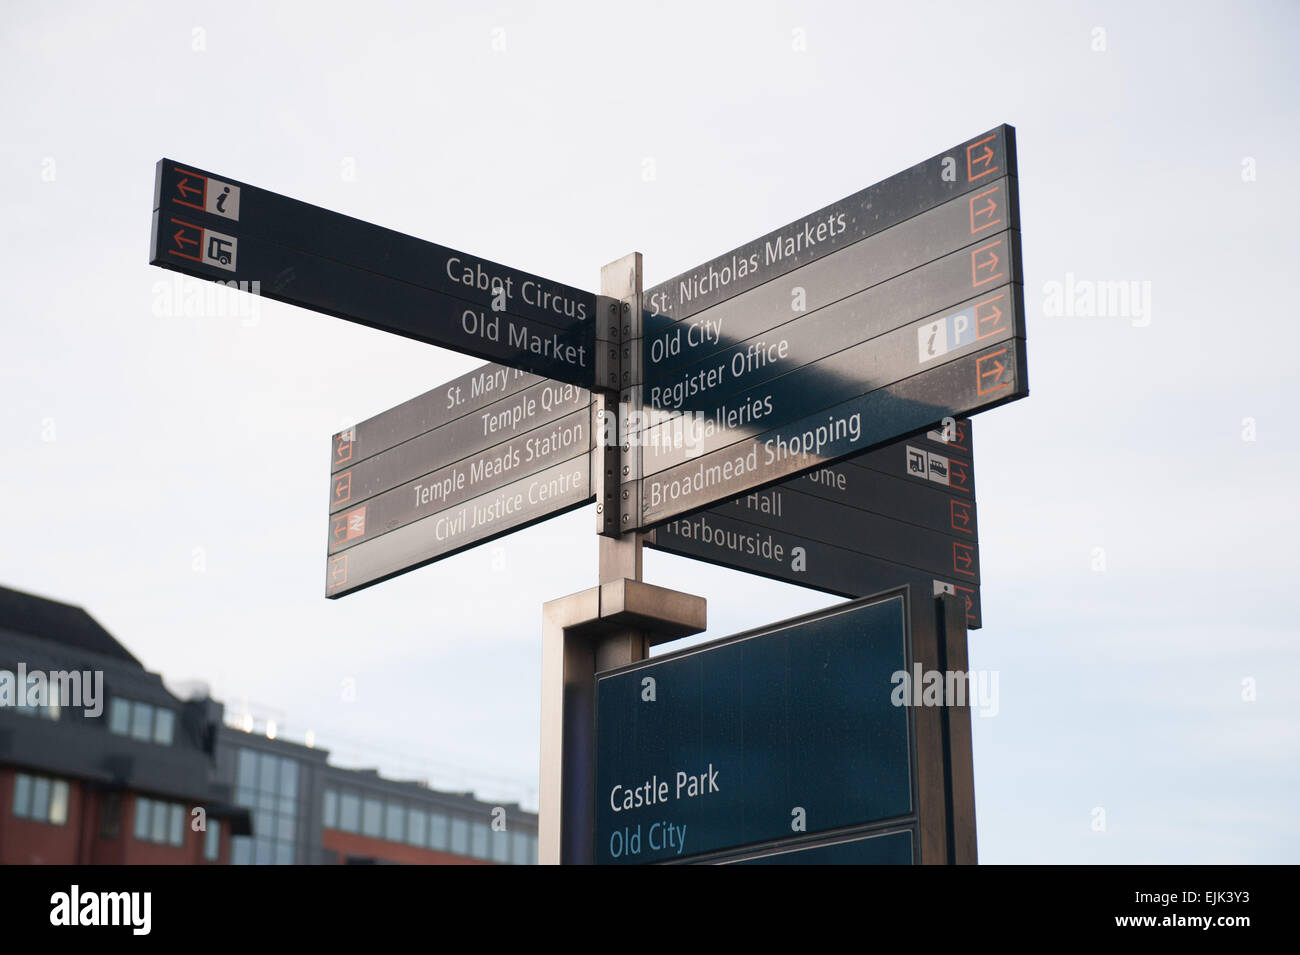 Signpost in Bristol City Centre showing Cabot Circus Old Market St Nicholas Market Old City Temple Quay - Stock Image